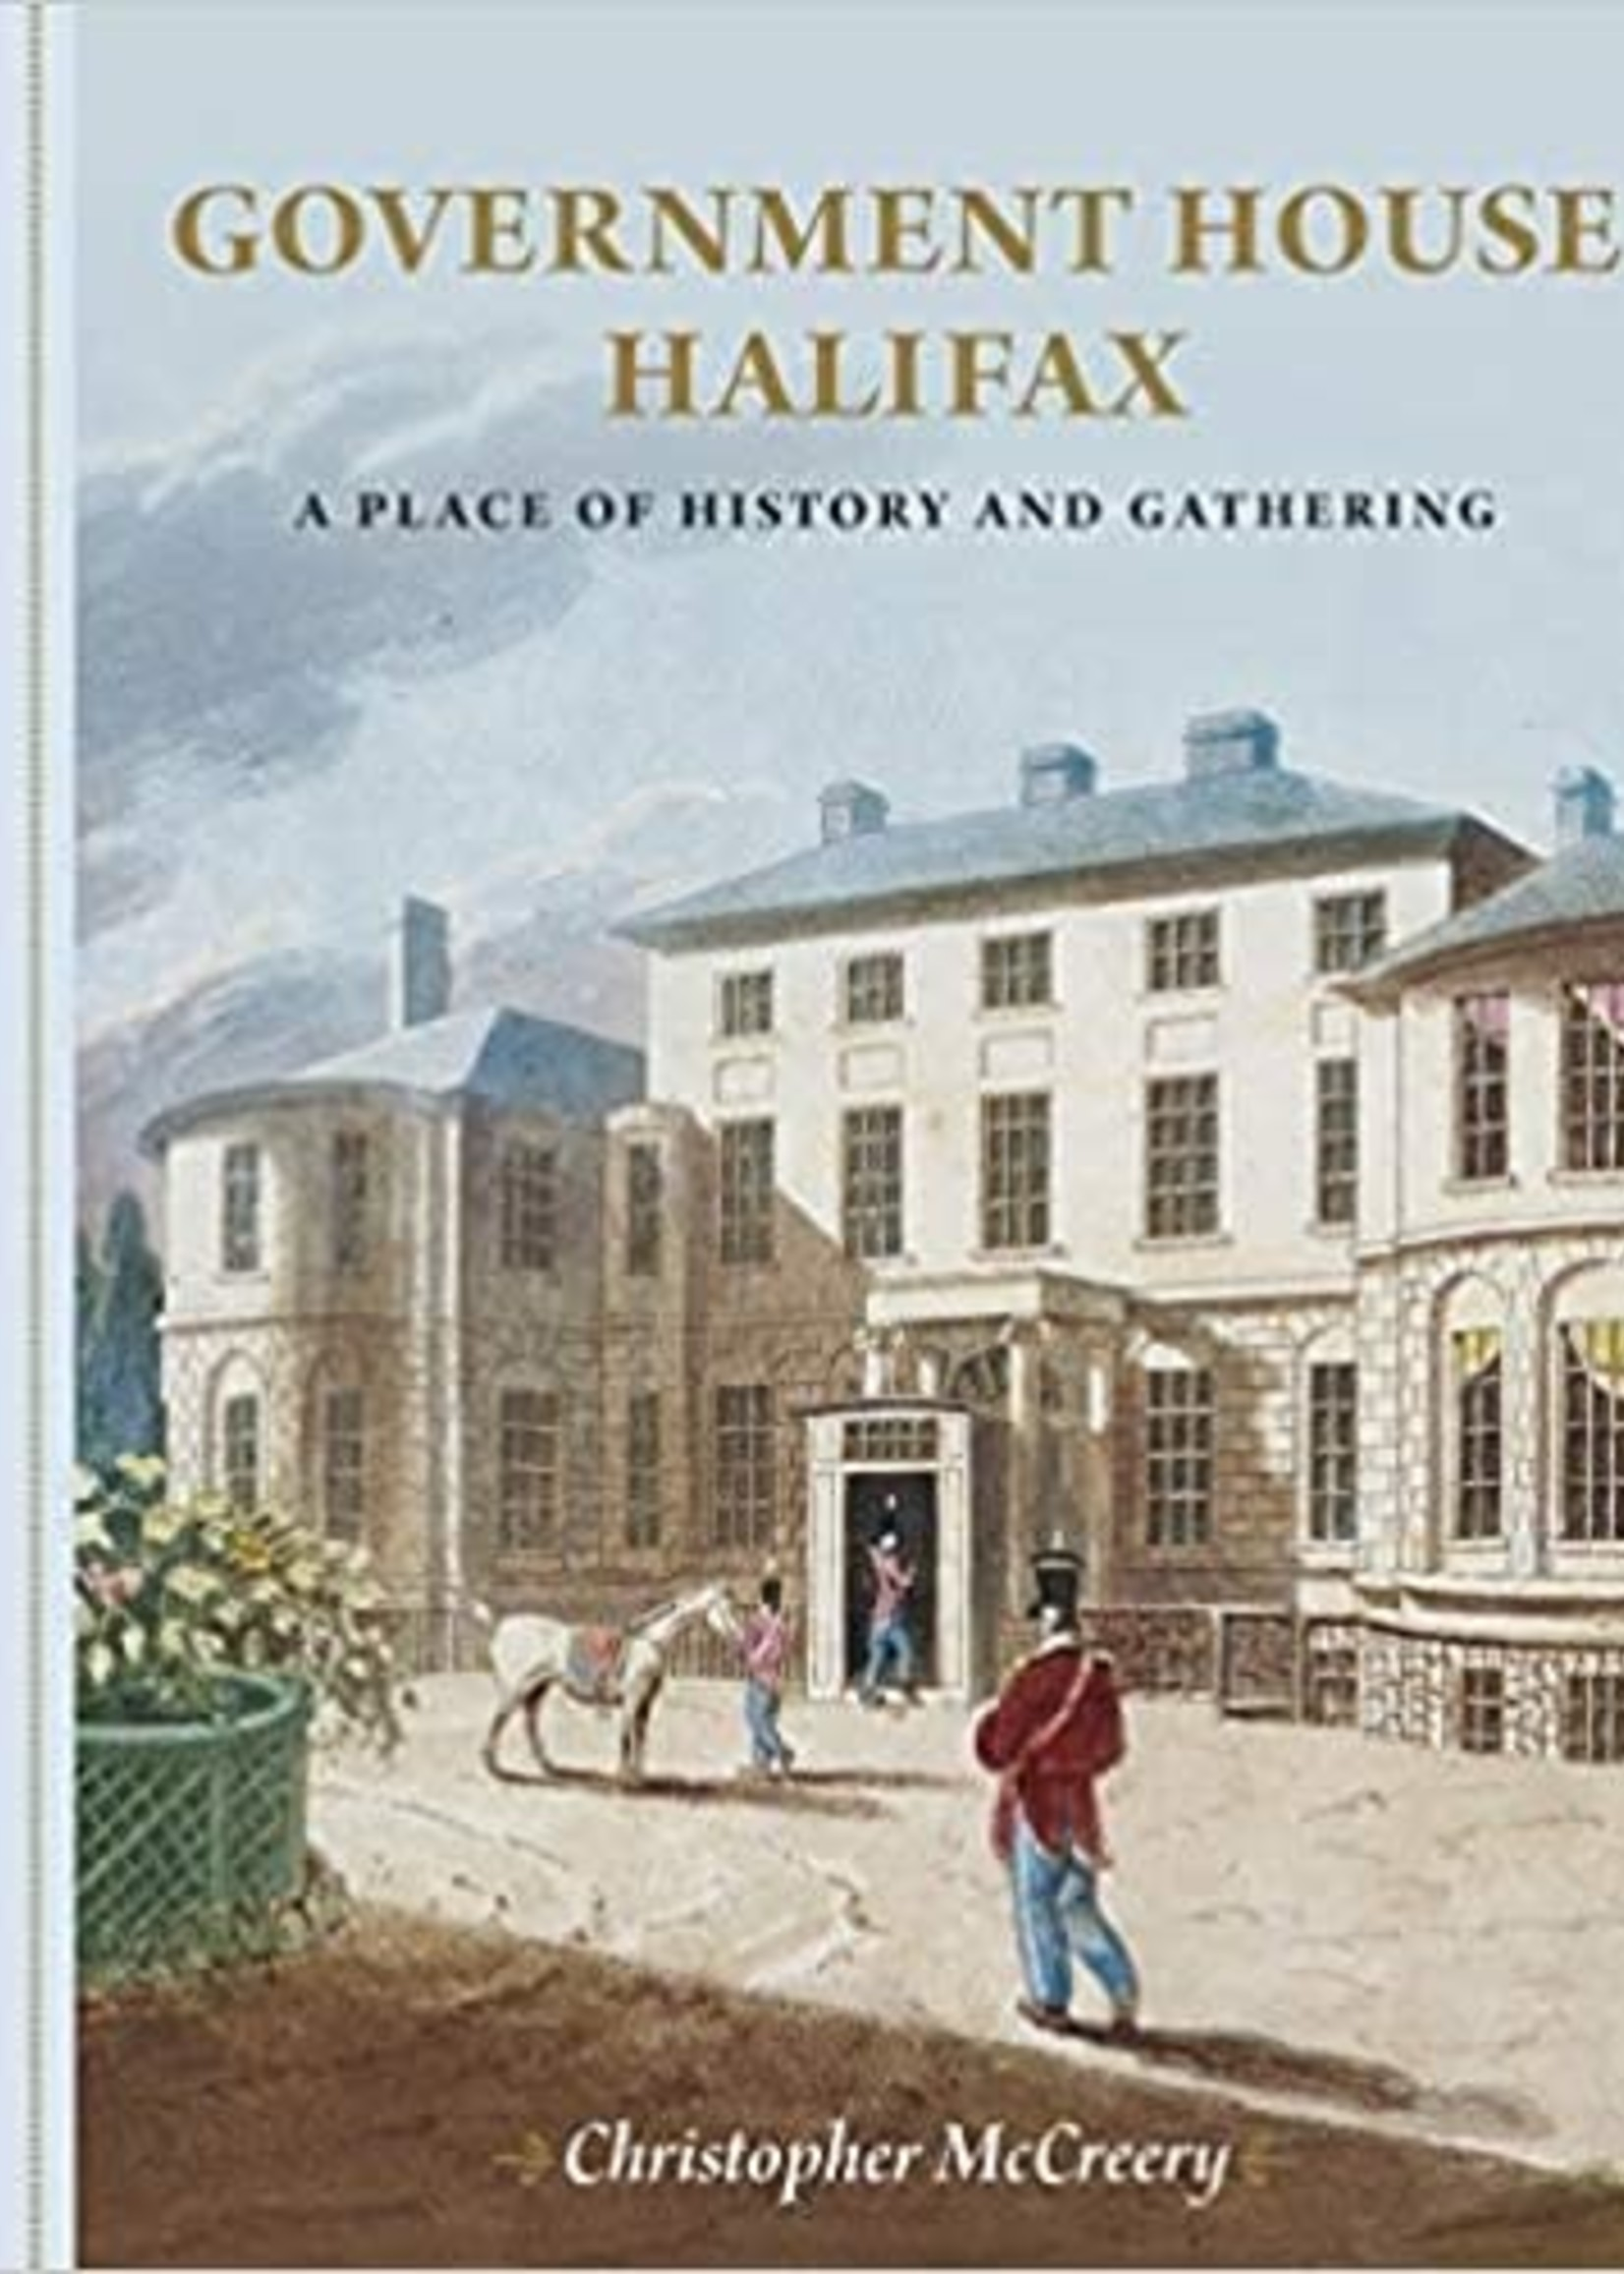 Government House Halifax: A Place of History and Gathering by Christopher McCreery